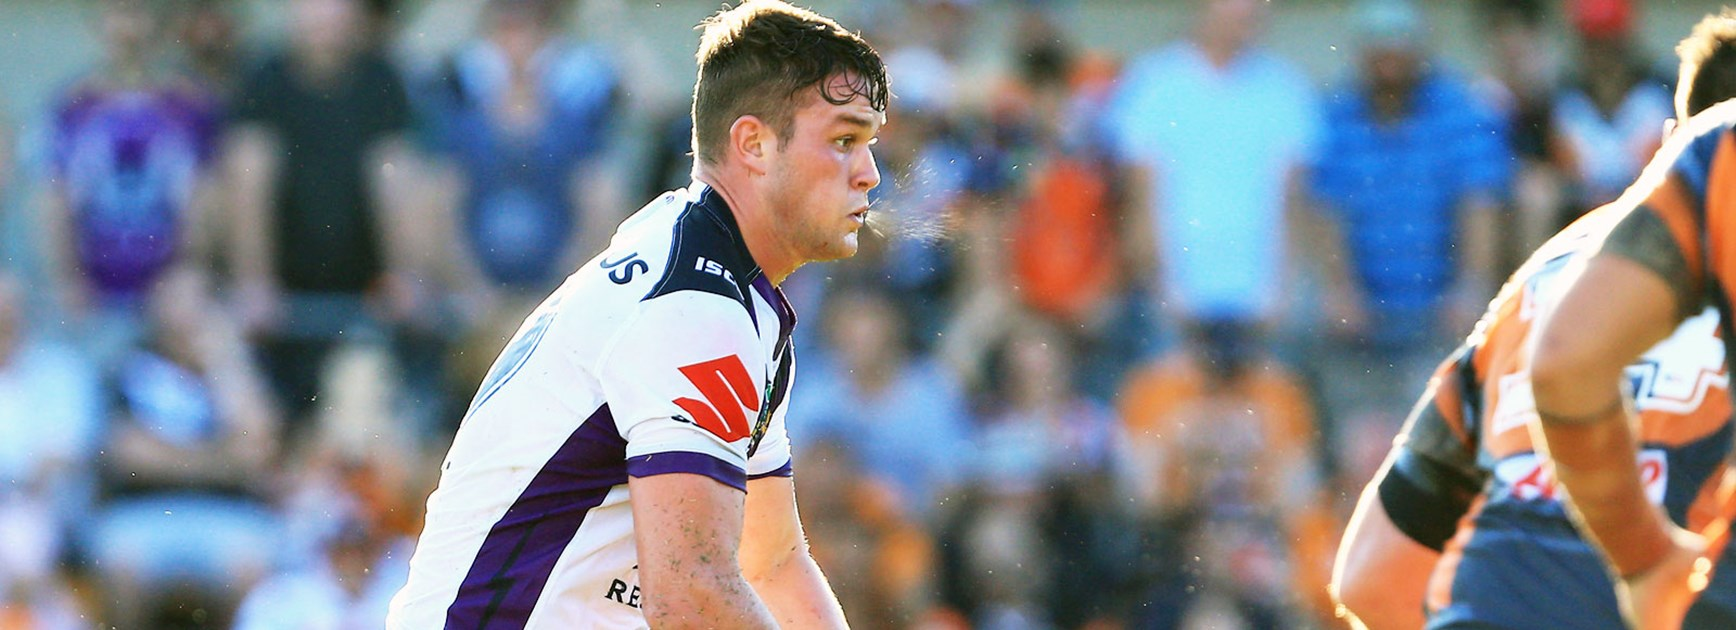 Storm forward Joe Stimson against Wests Tigers in Round 4.